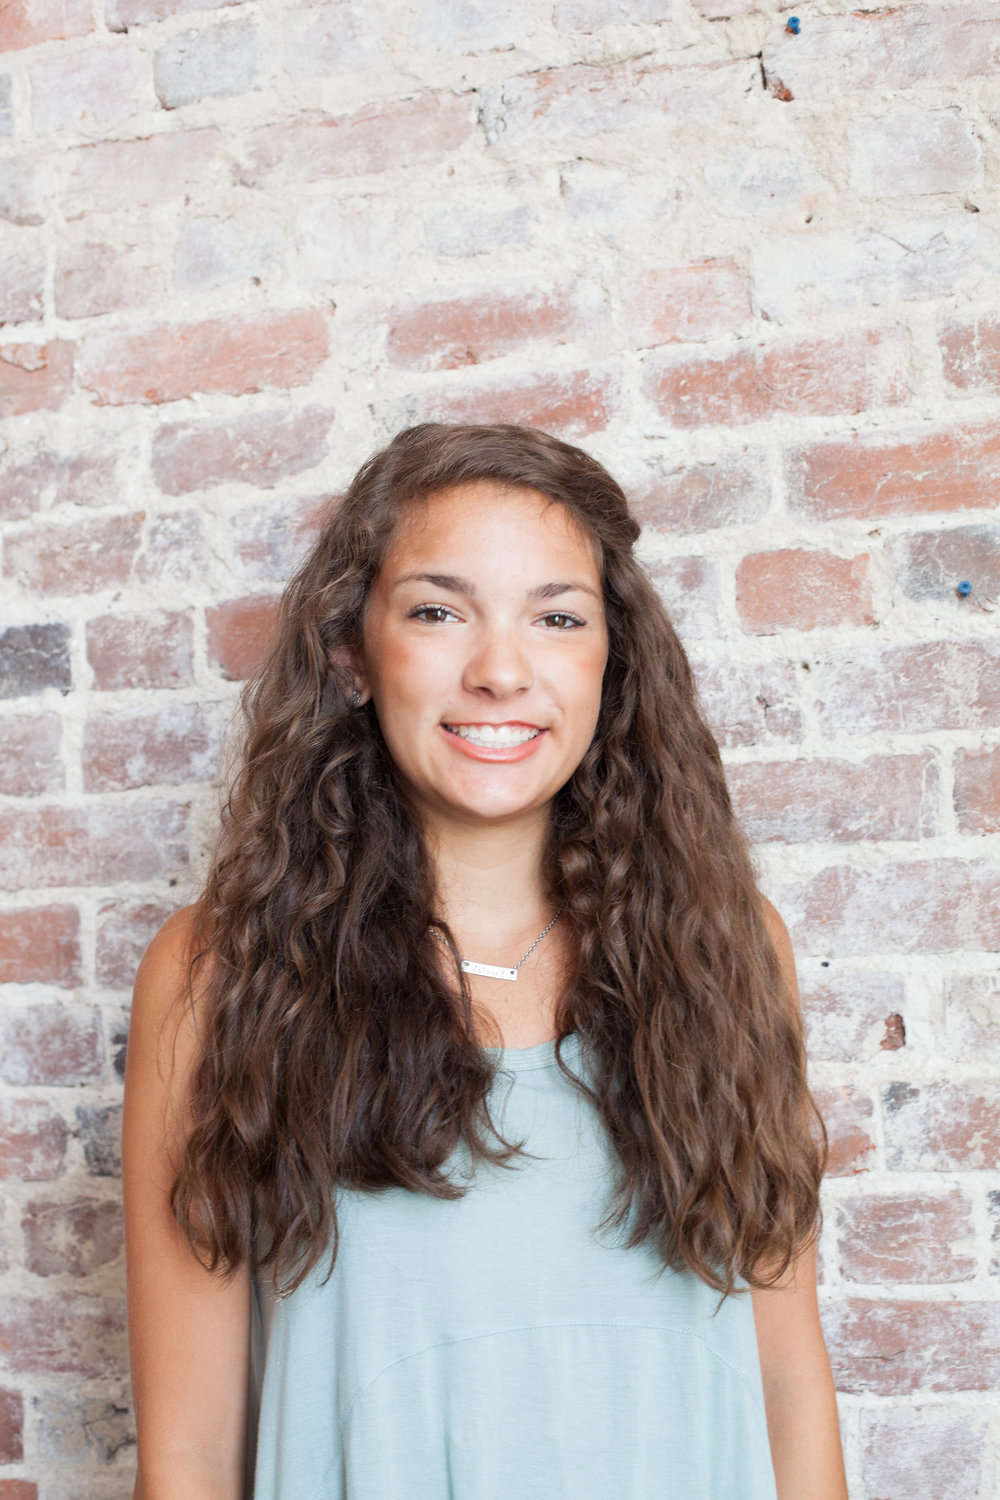 Eliza Price, Intern Eliza is going places. This sophomore is an old soul and daily impresses with her ideas and ways to improve efficiency. She works alongside her mama Jackie in production and assists with photography and social media.